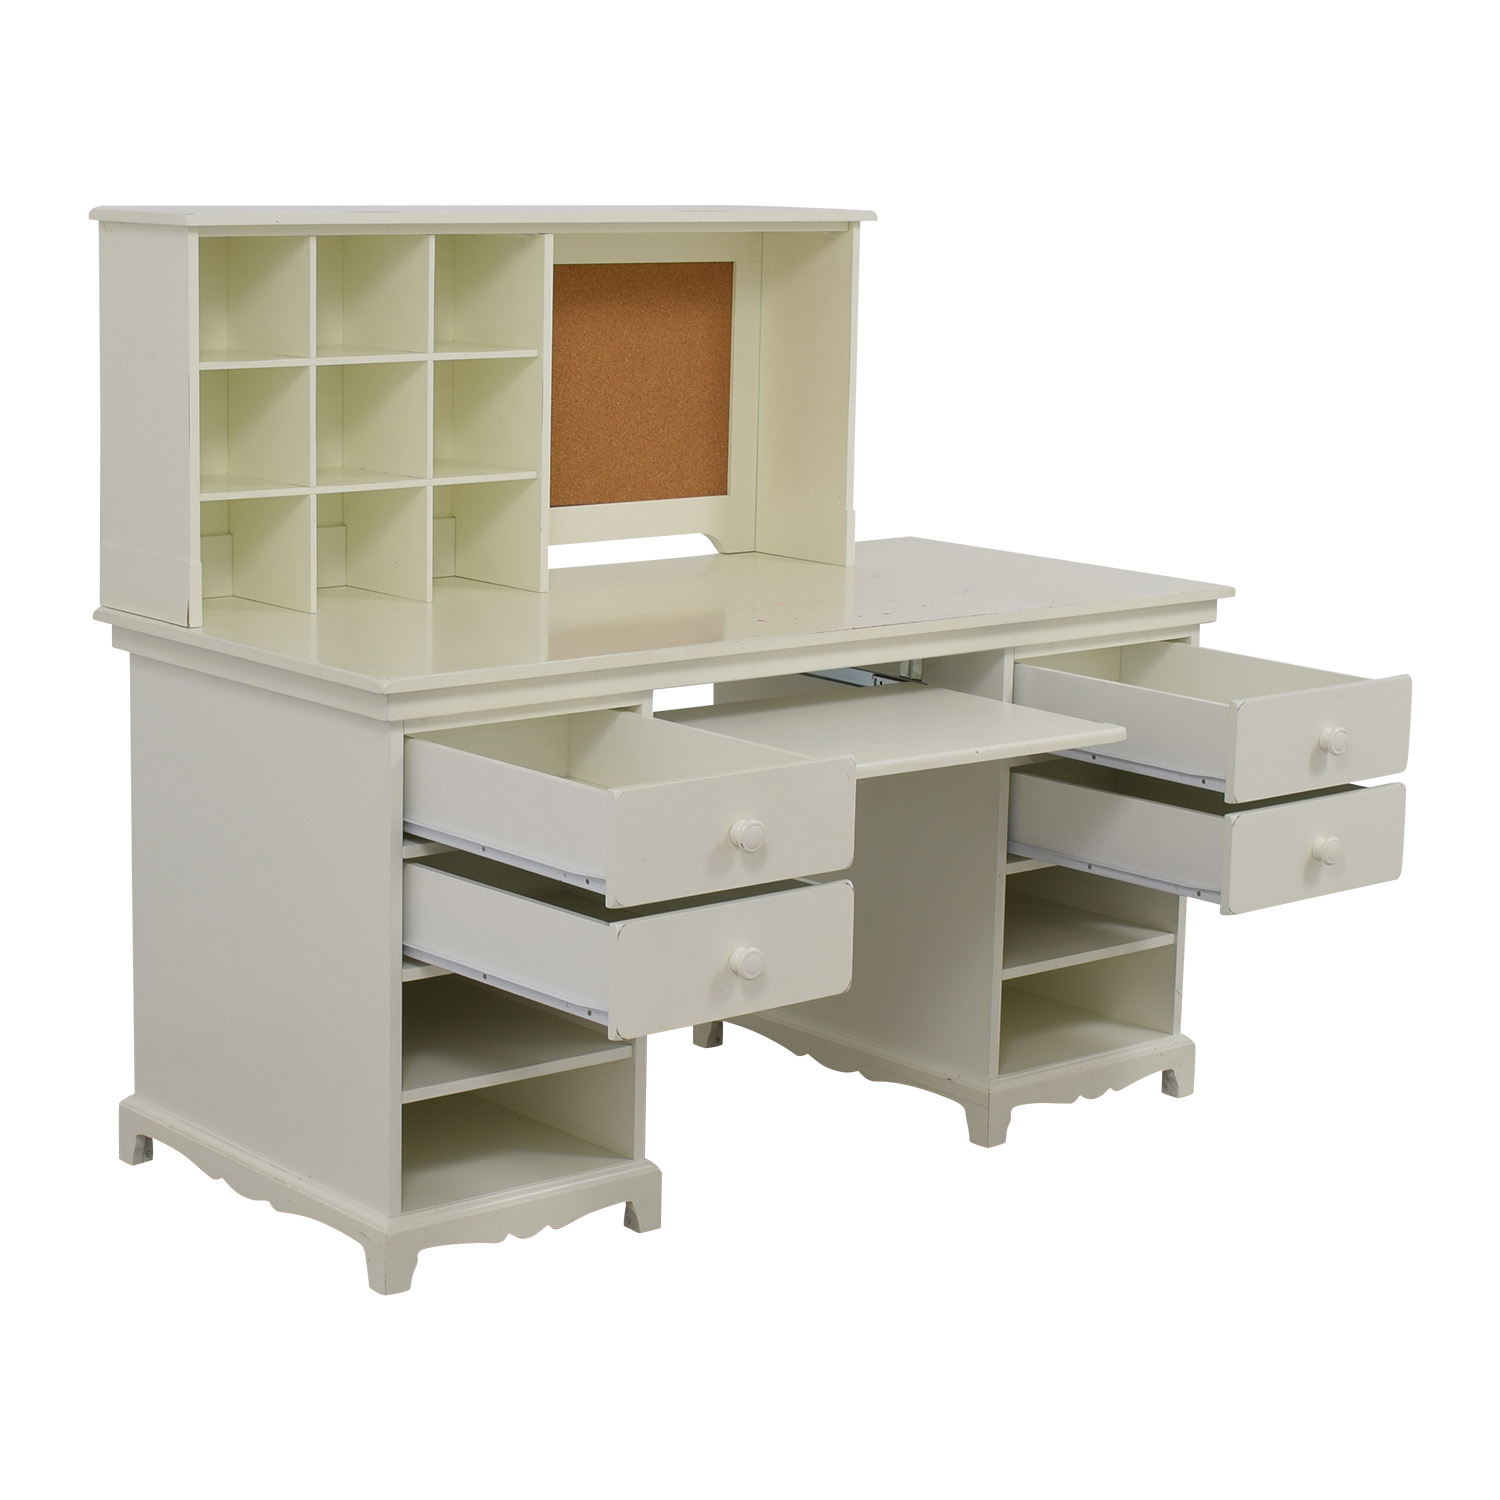 55 Off Pottery Barn Pottery Barn White Desk With Cubby